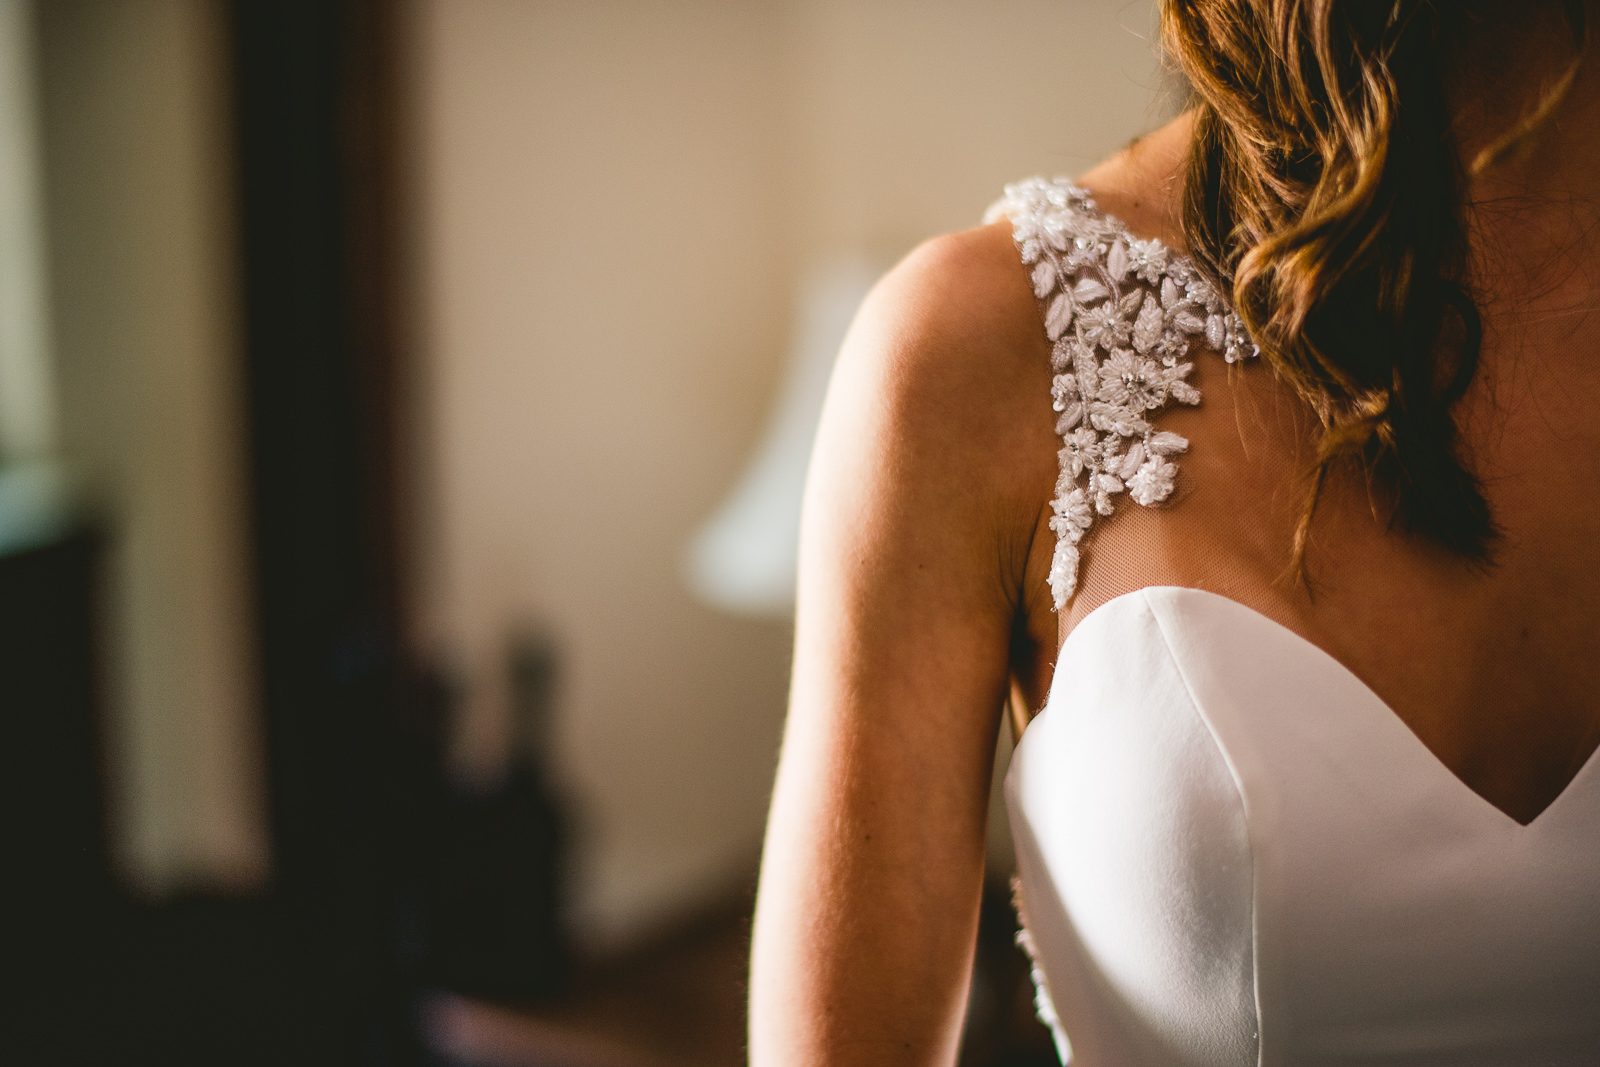 20 bride dress detail - Club of Hillbrook Wedding // Jenna + Ben